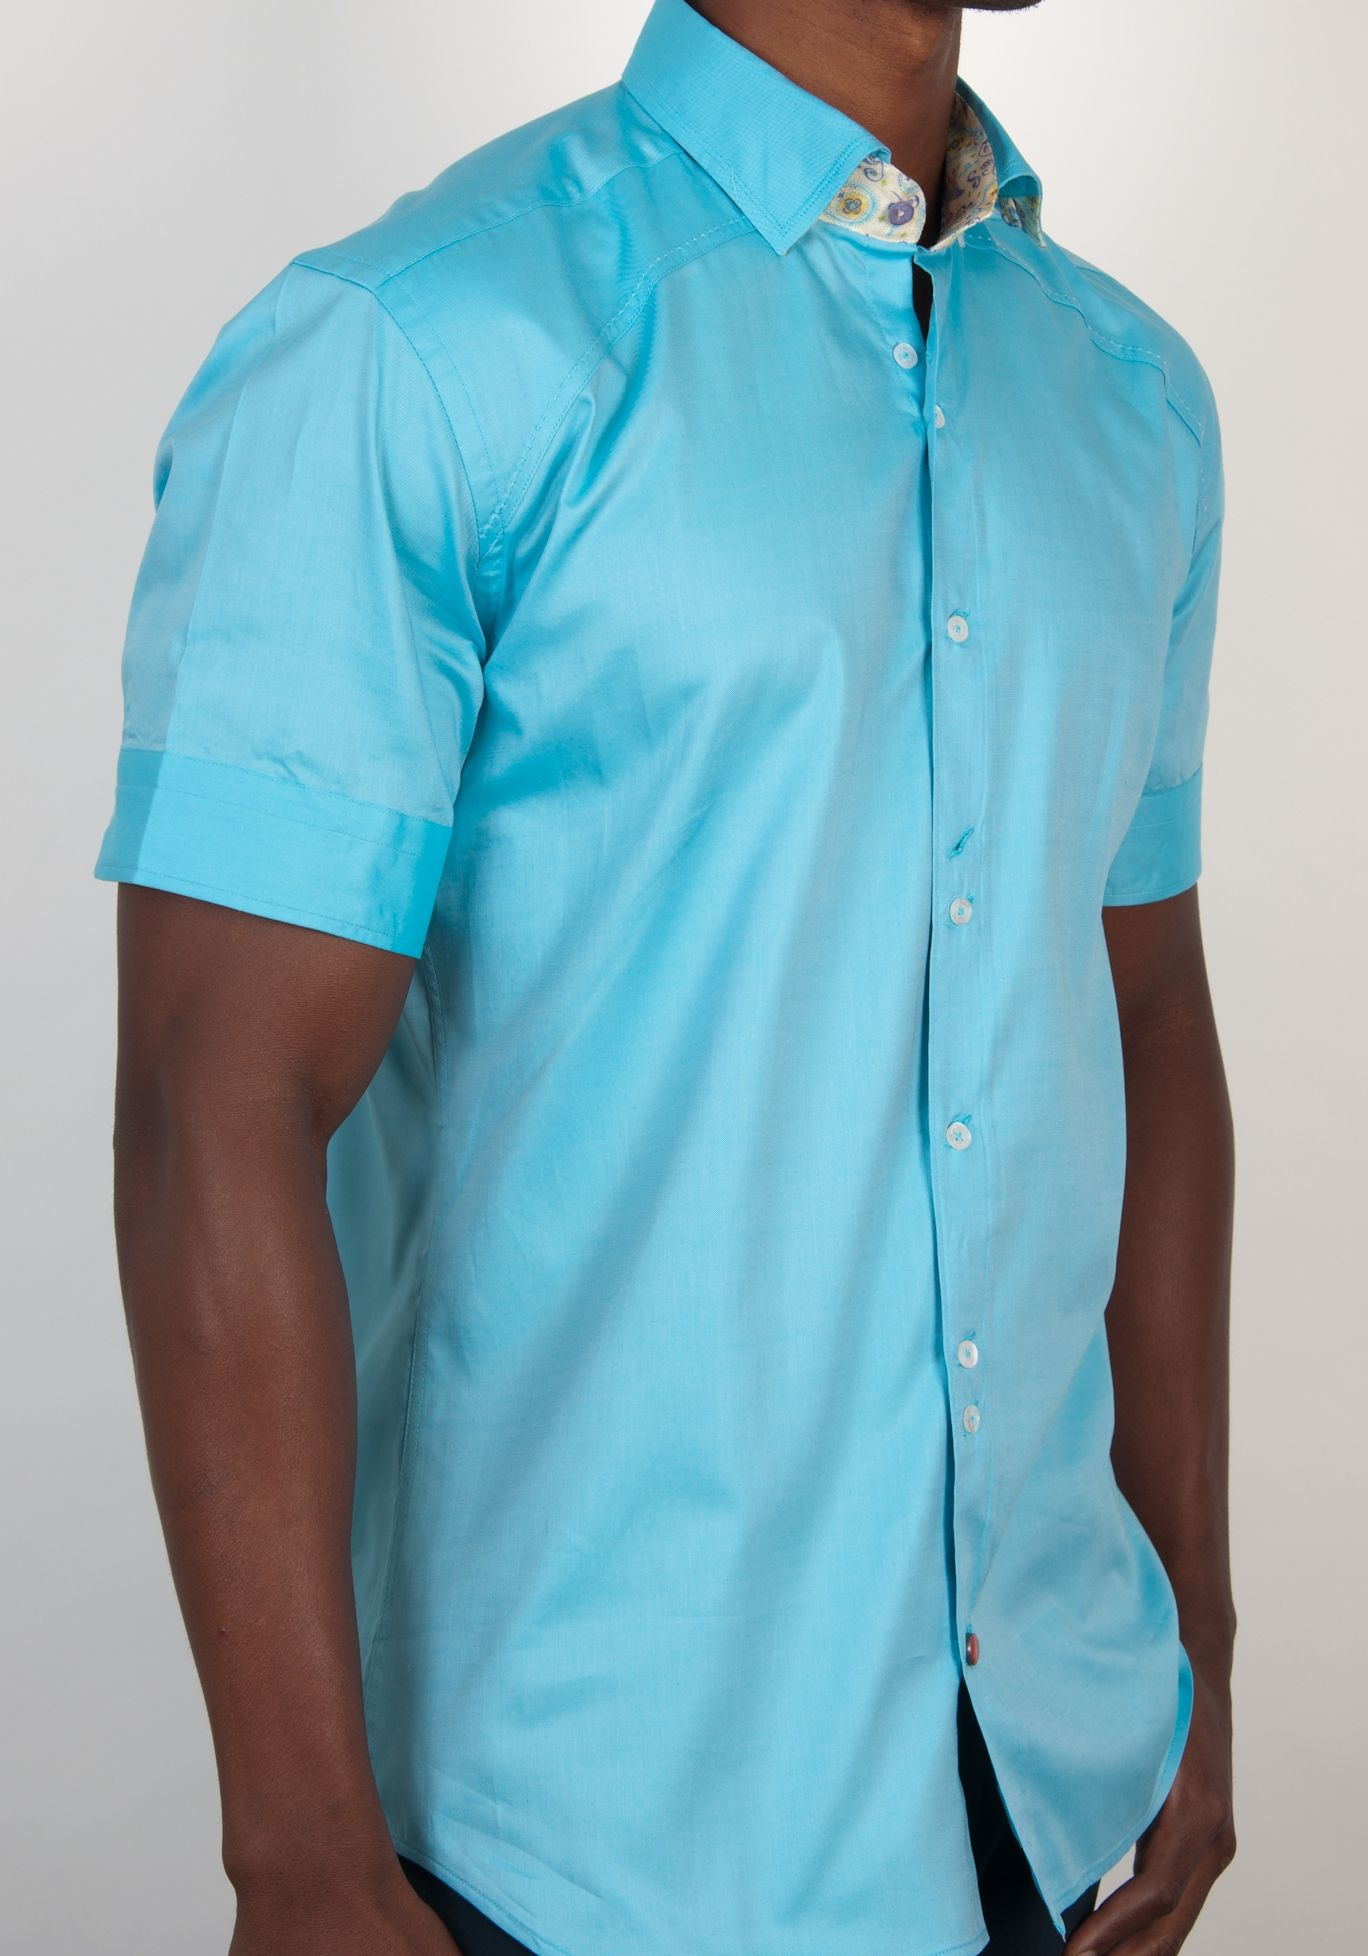 Turquoise Oxford Short Sleeve Button Down Shirt With Light